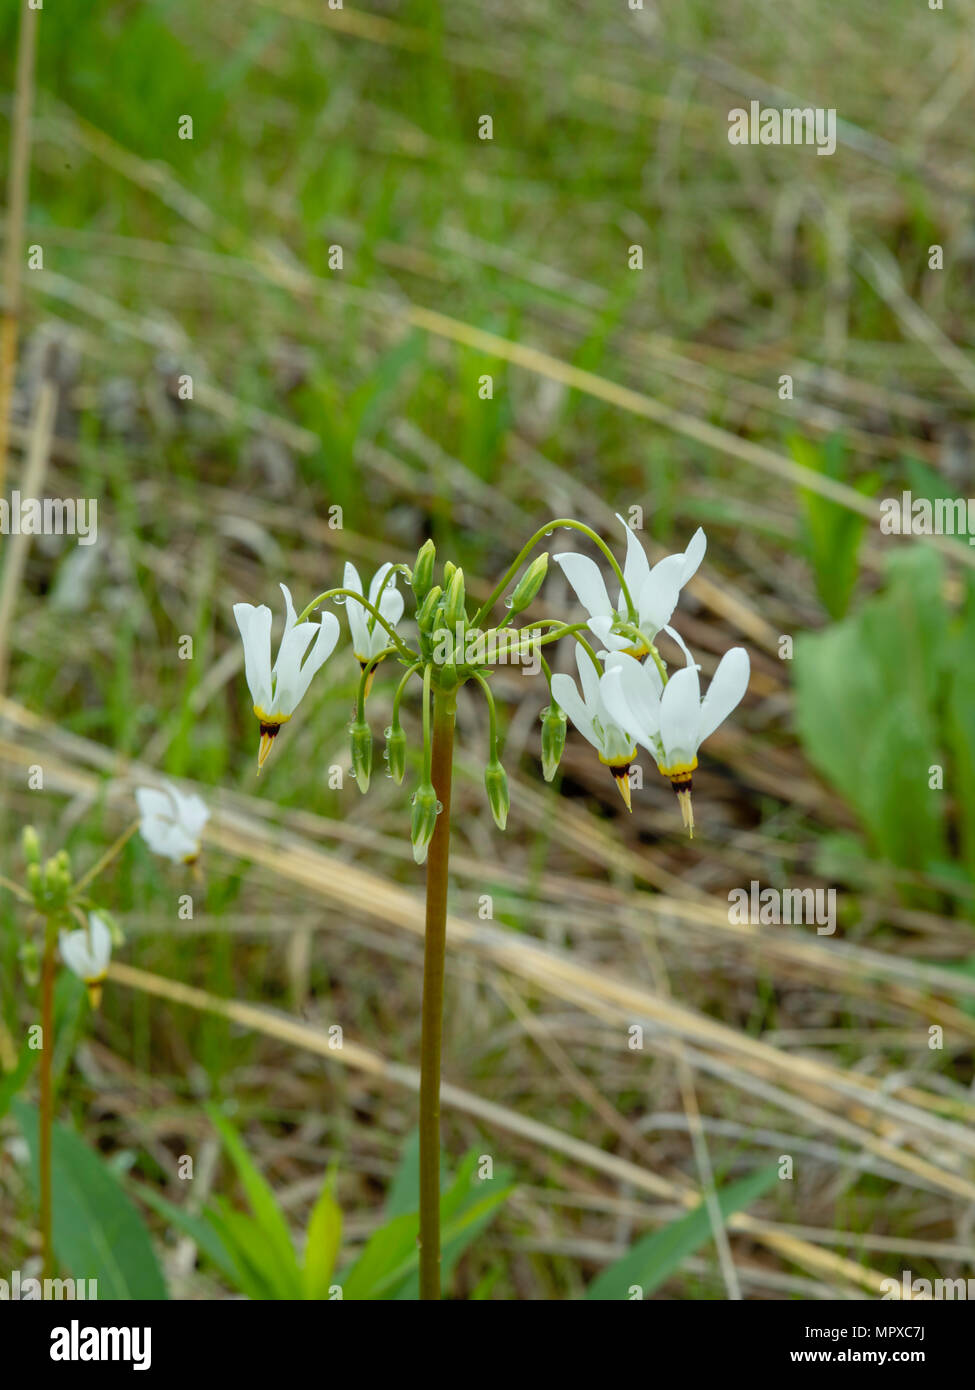 Image of Shooting Star (Dodecatheon meadia) growing in the University of Wisconsin Arboretum, Madison, Wisconsin, USA. - Stock Image